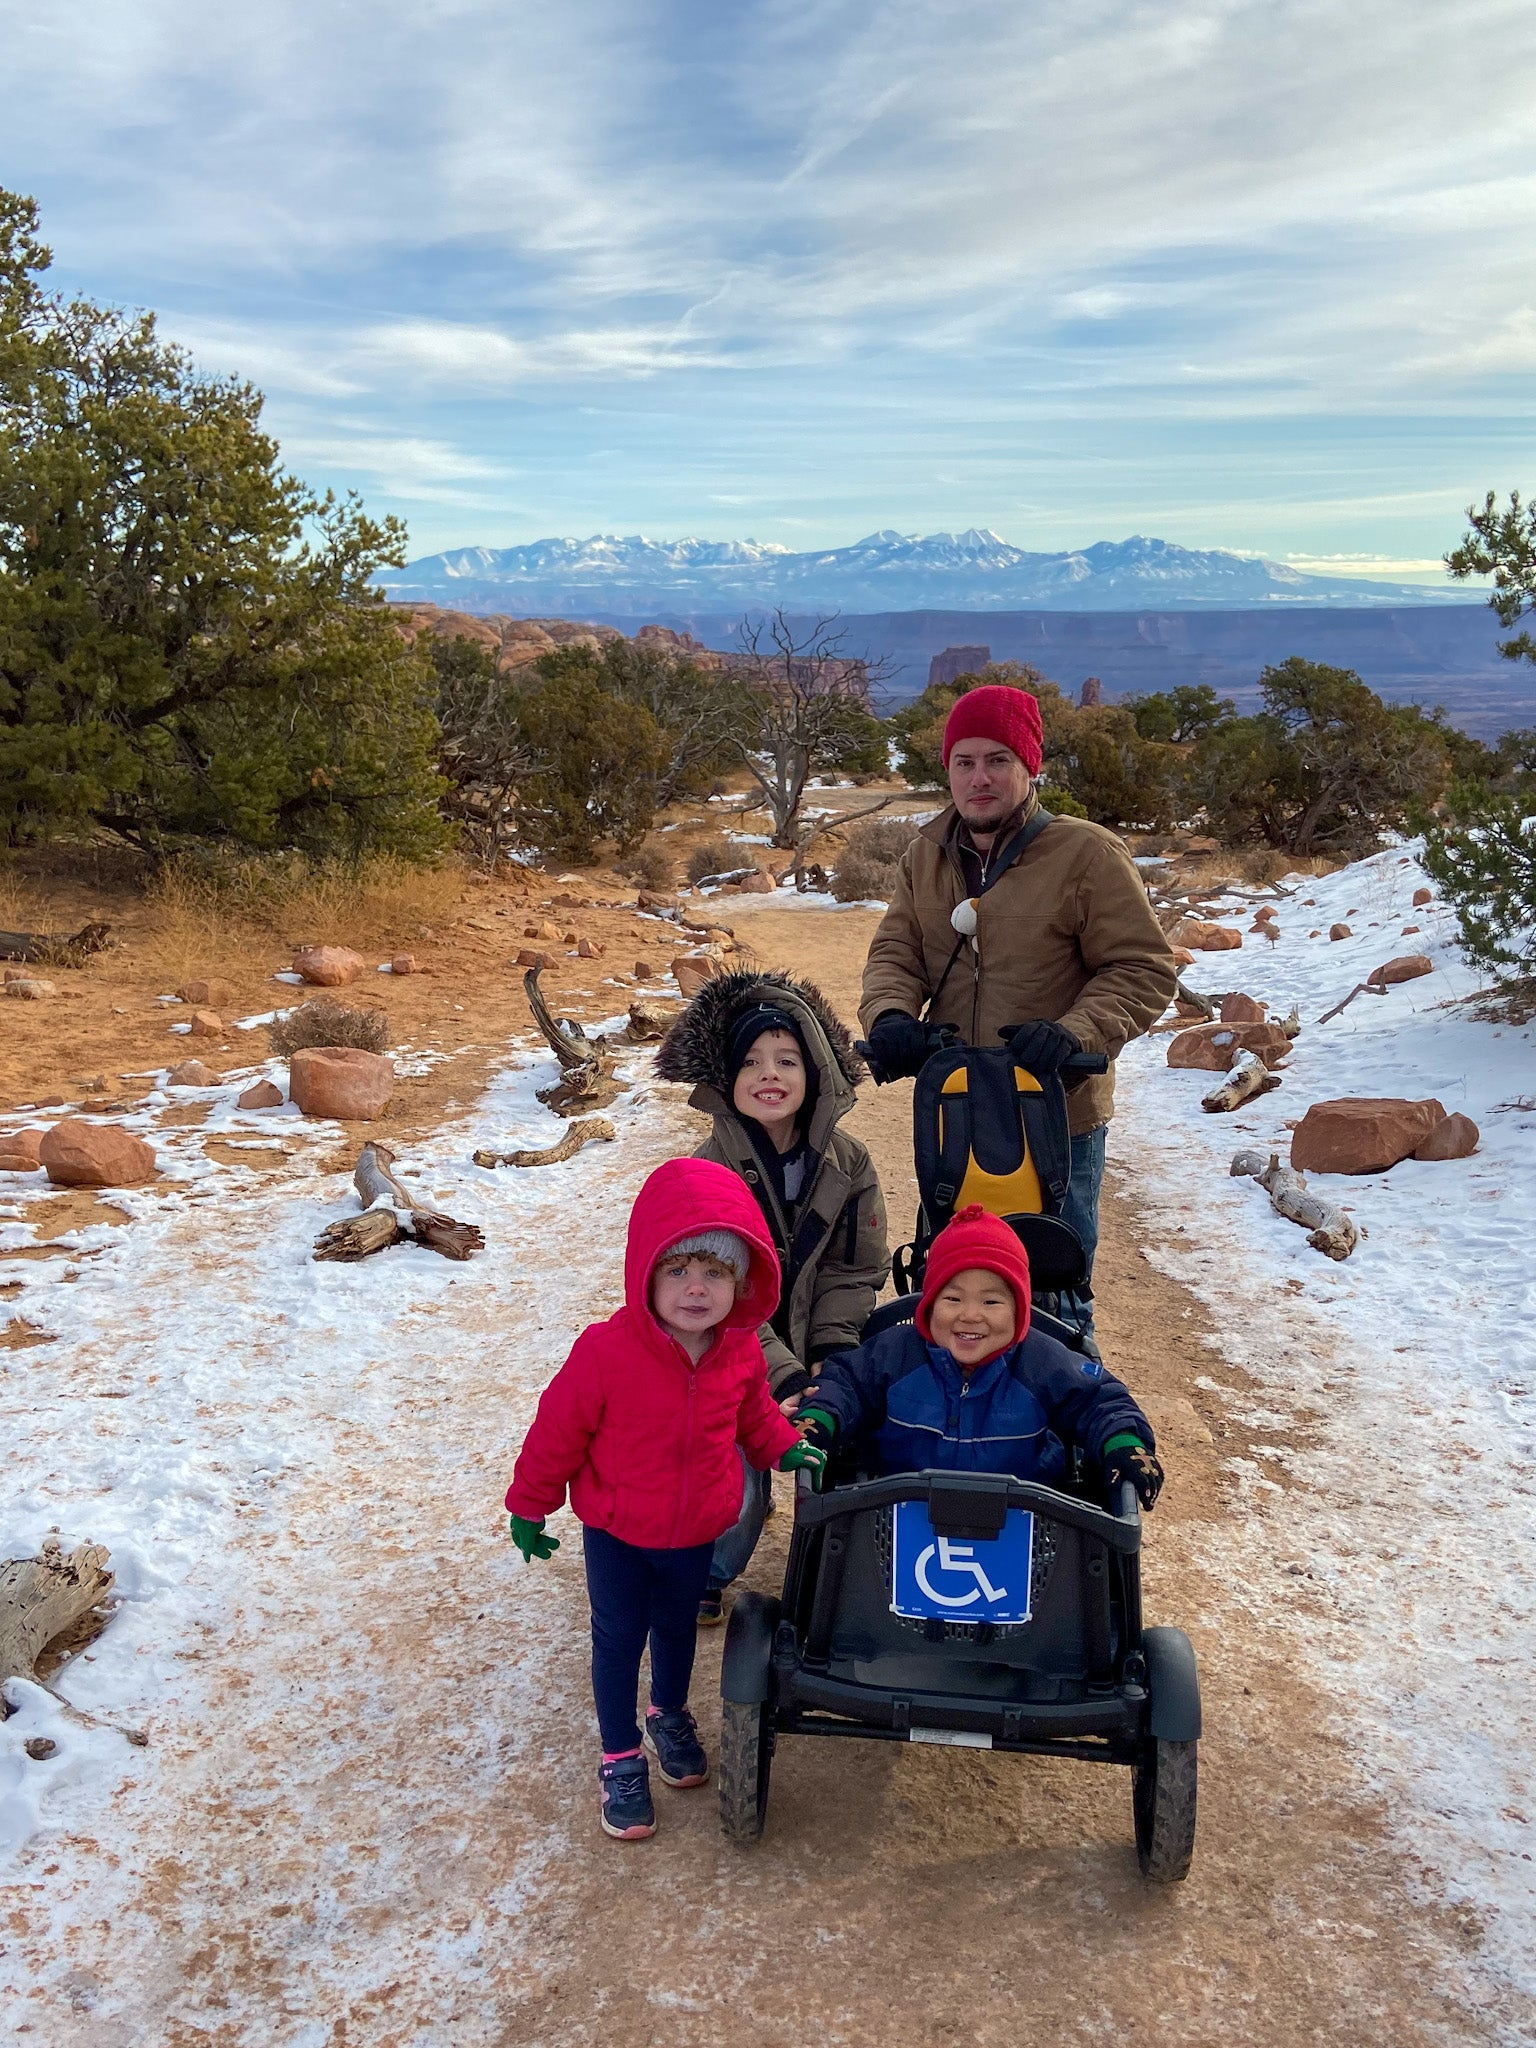 A PARENT'S ADVICE FOR GETTING OUTSIDE WITH A SPECIAL NEEDS KID - Wheelchair